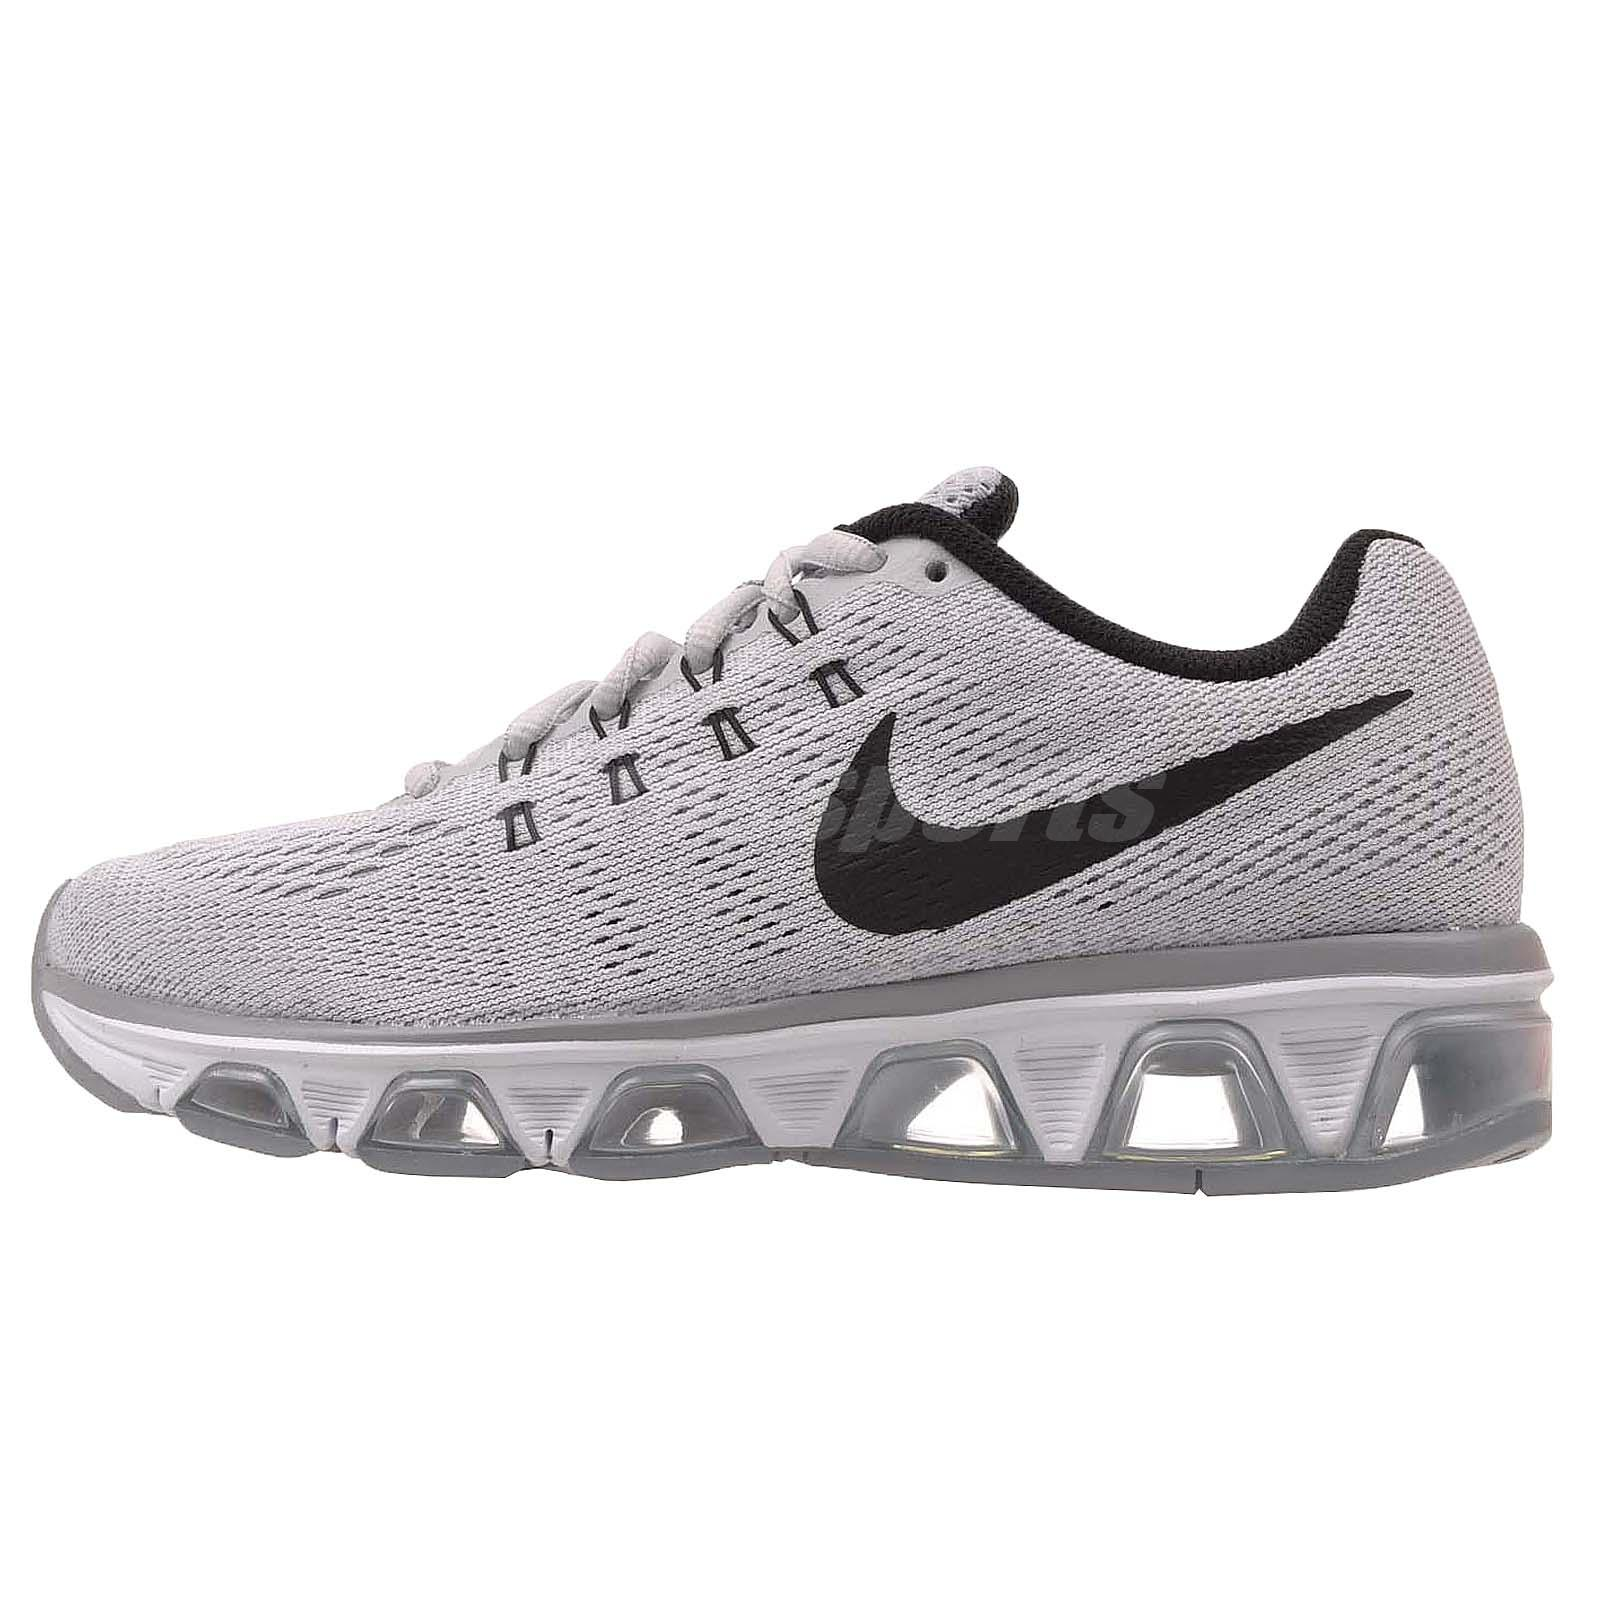 release date: 1a3f7 73f78 ... promo code for nike wmns air max tailwind 8 womens running shoes 2015  sneakers 805942 002